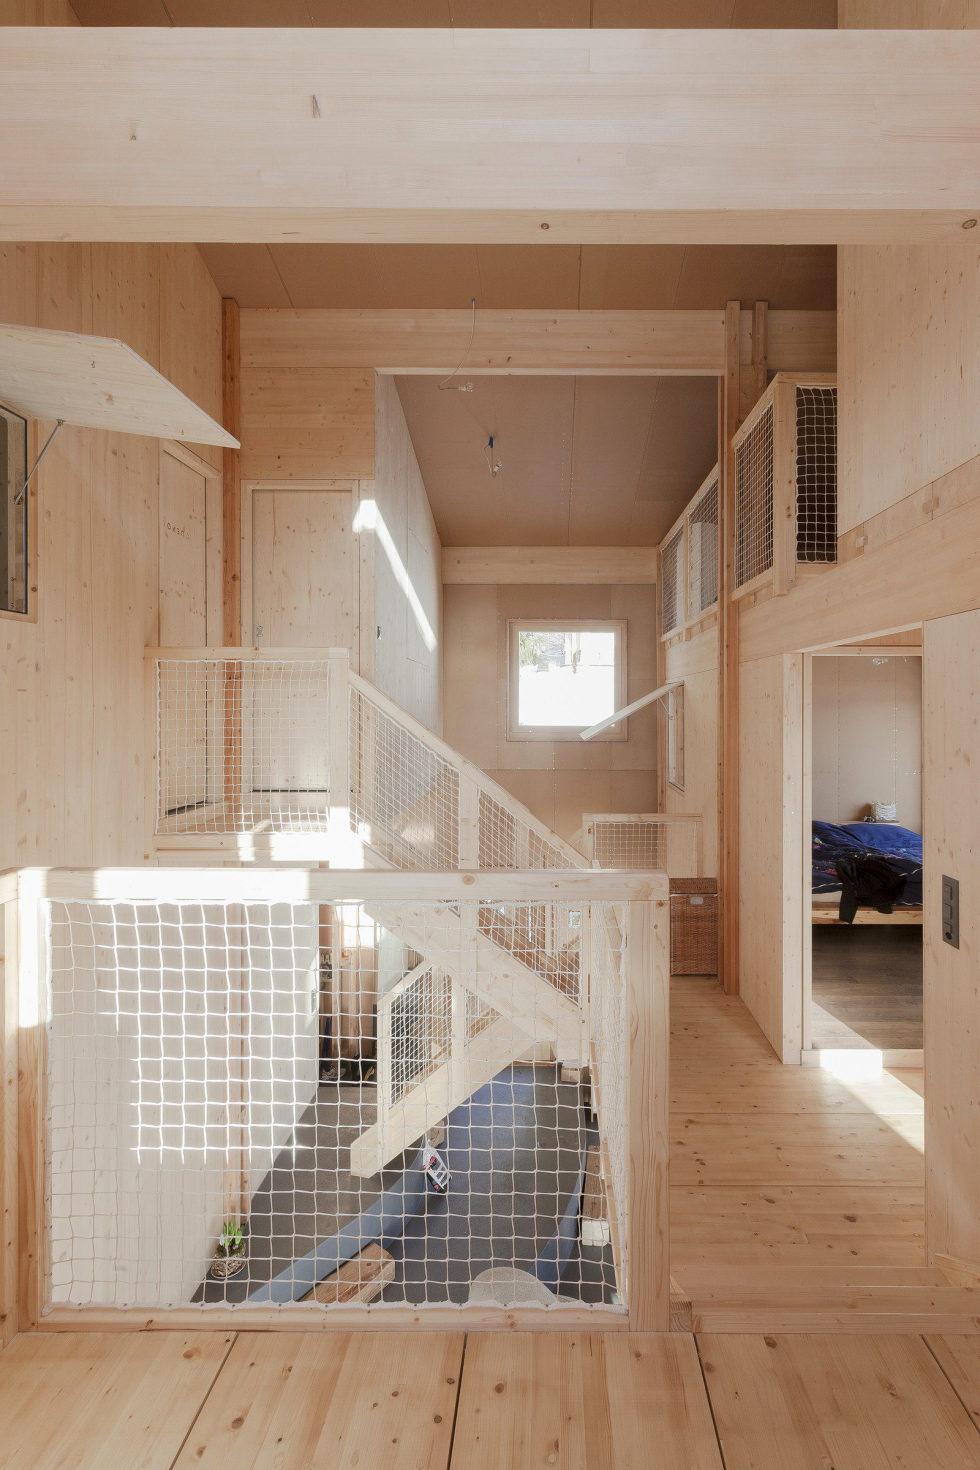 The House For A Family With Children at Switzerland Mountains From Kunik de Morsier architects 10